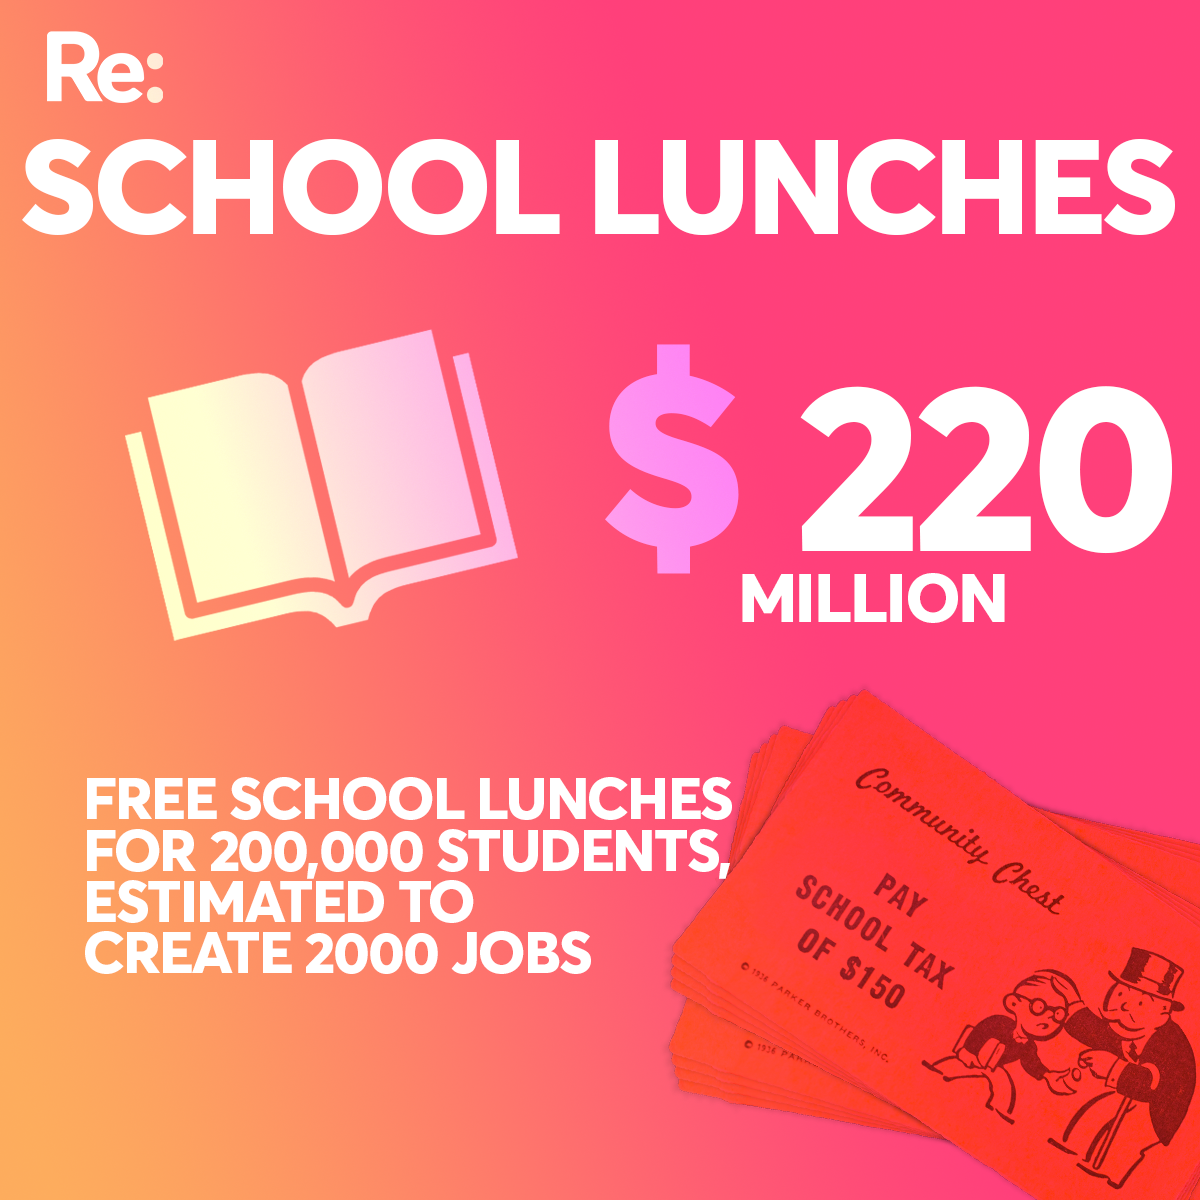 2 2020 BUDGET 06 EDUCATION SCHOOL LUNCHES